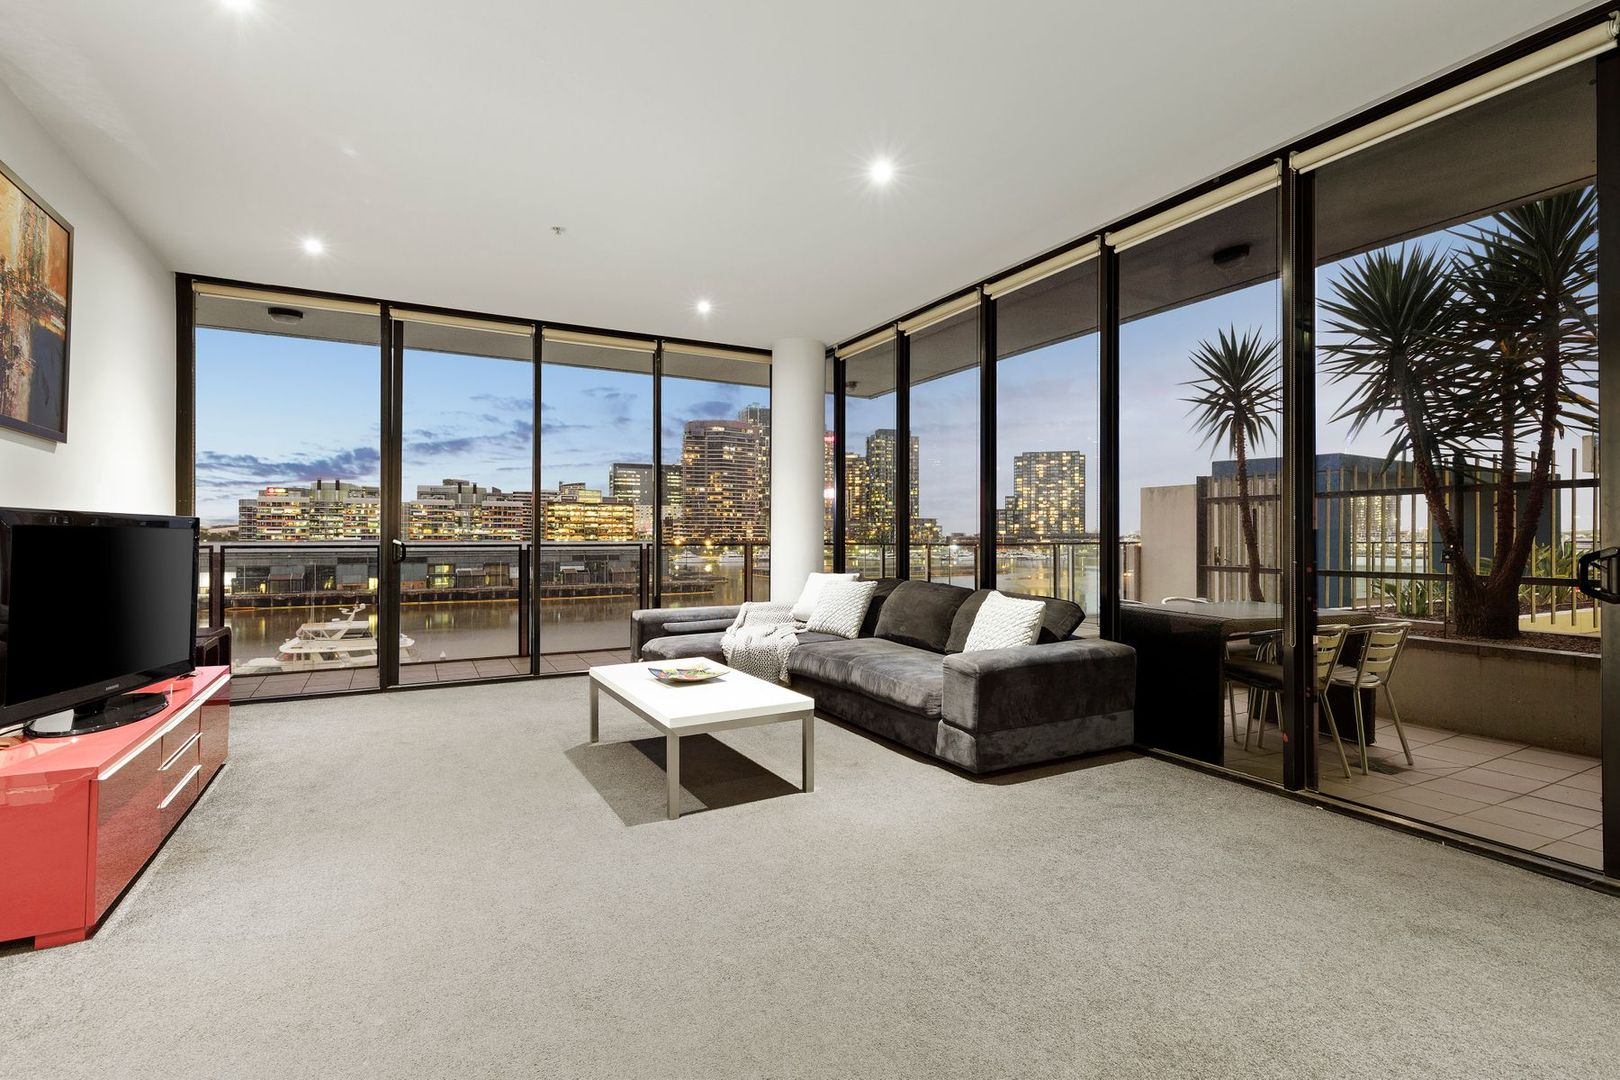 305/30 Newquay Prom, Docklands VIC 3008, Image 0